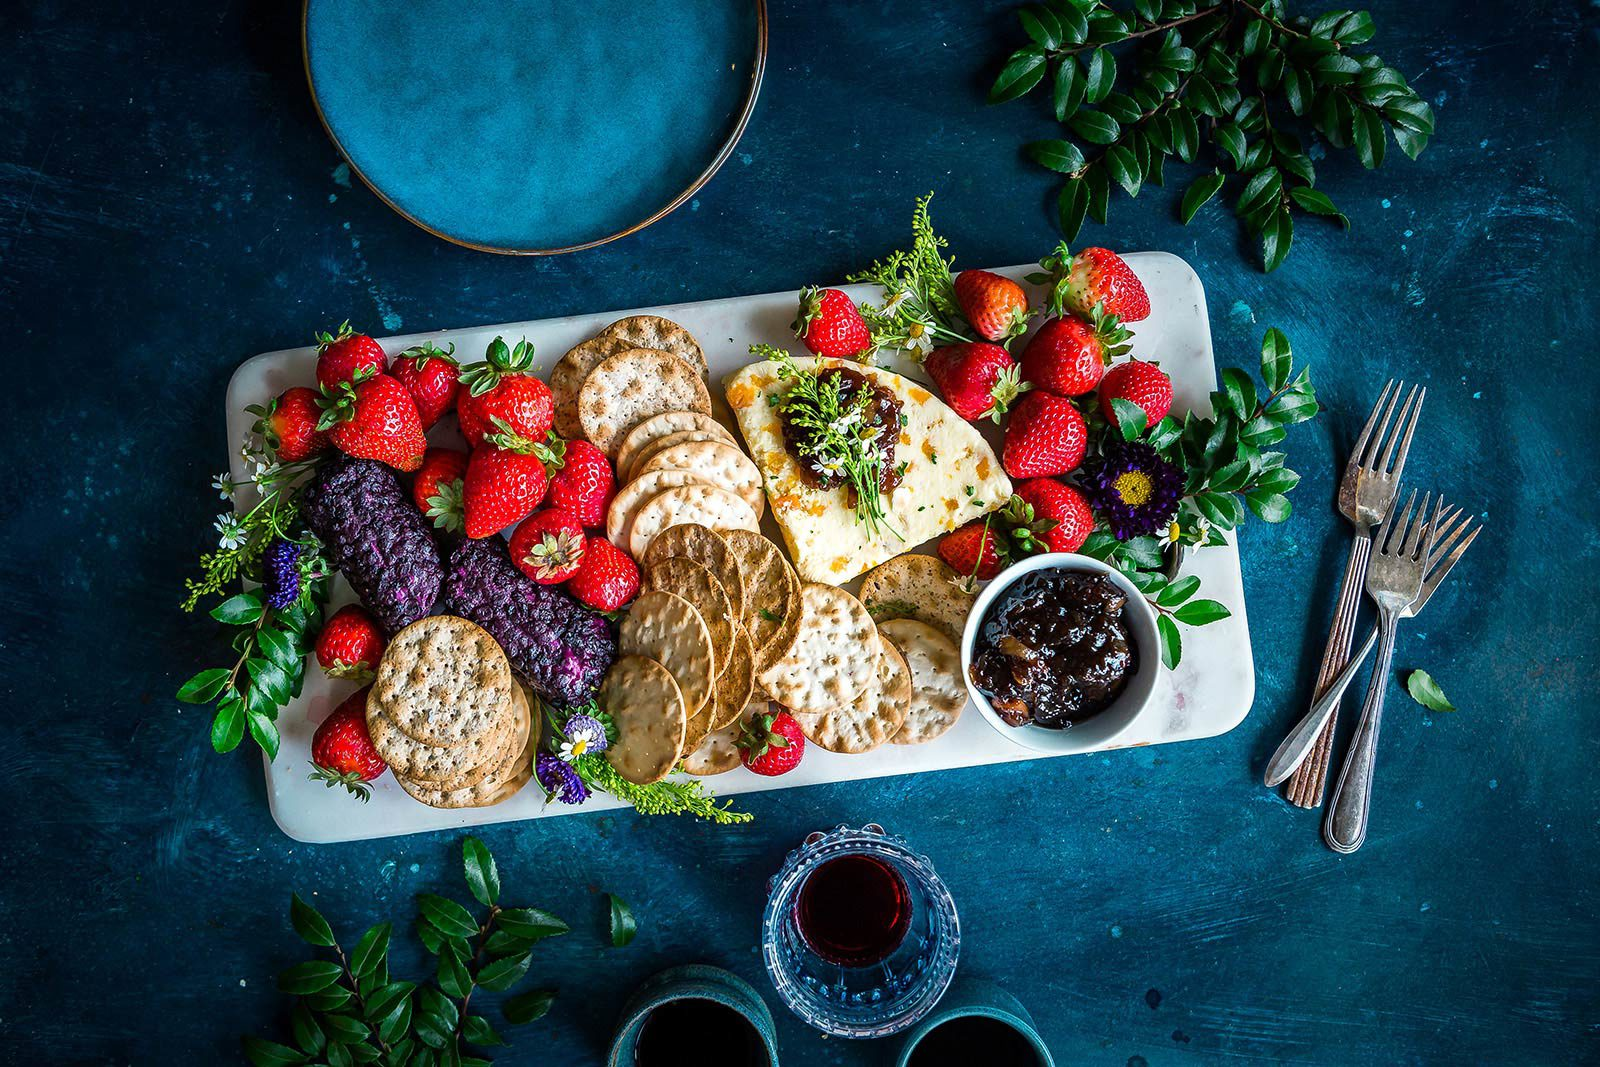 Platter of bread, crackers, strawberries and preserves with leaves and flowers on blue table.